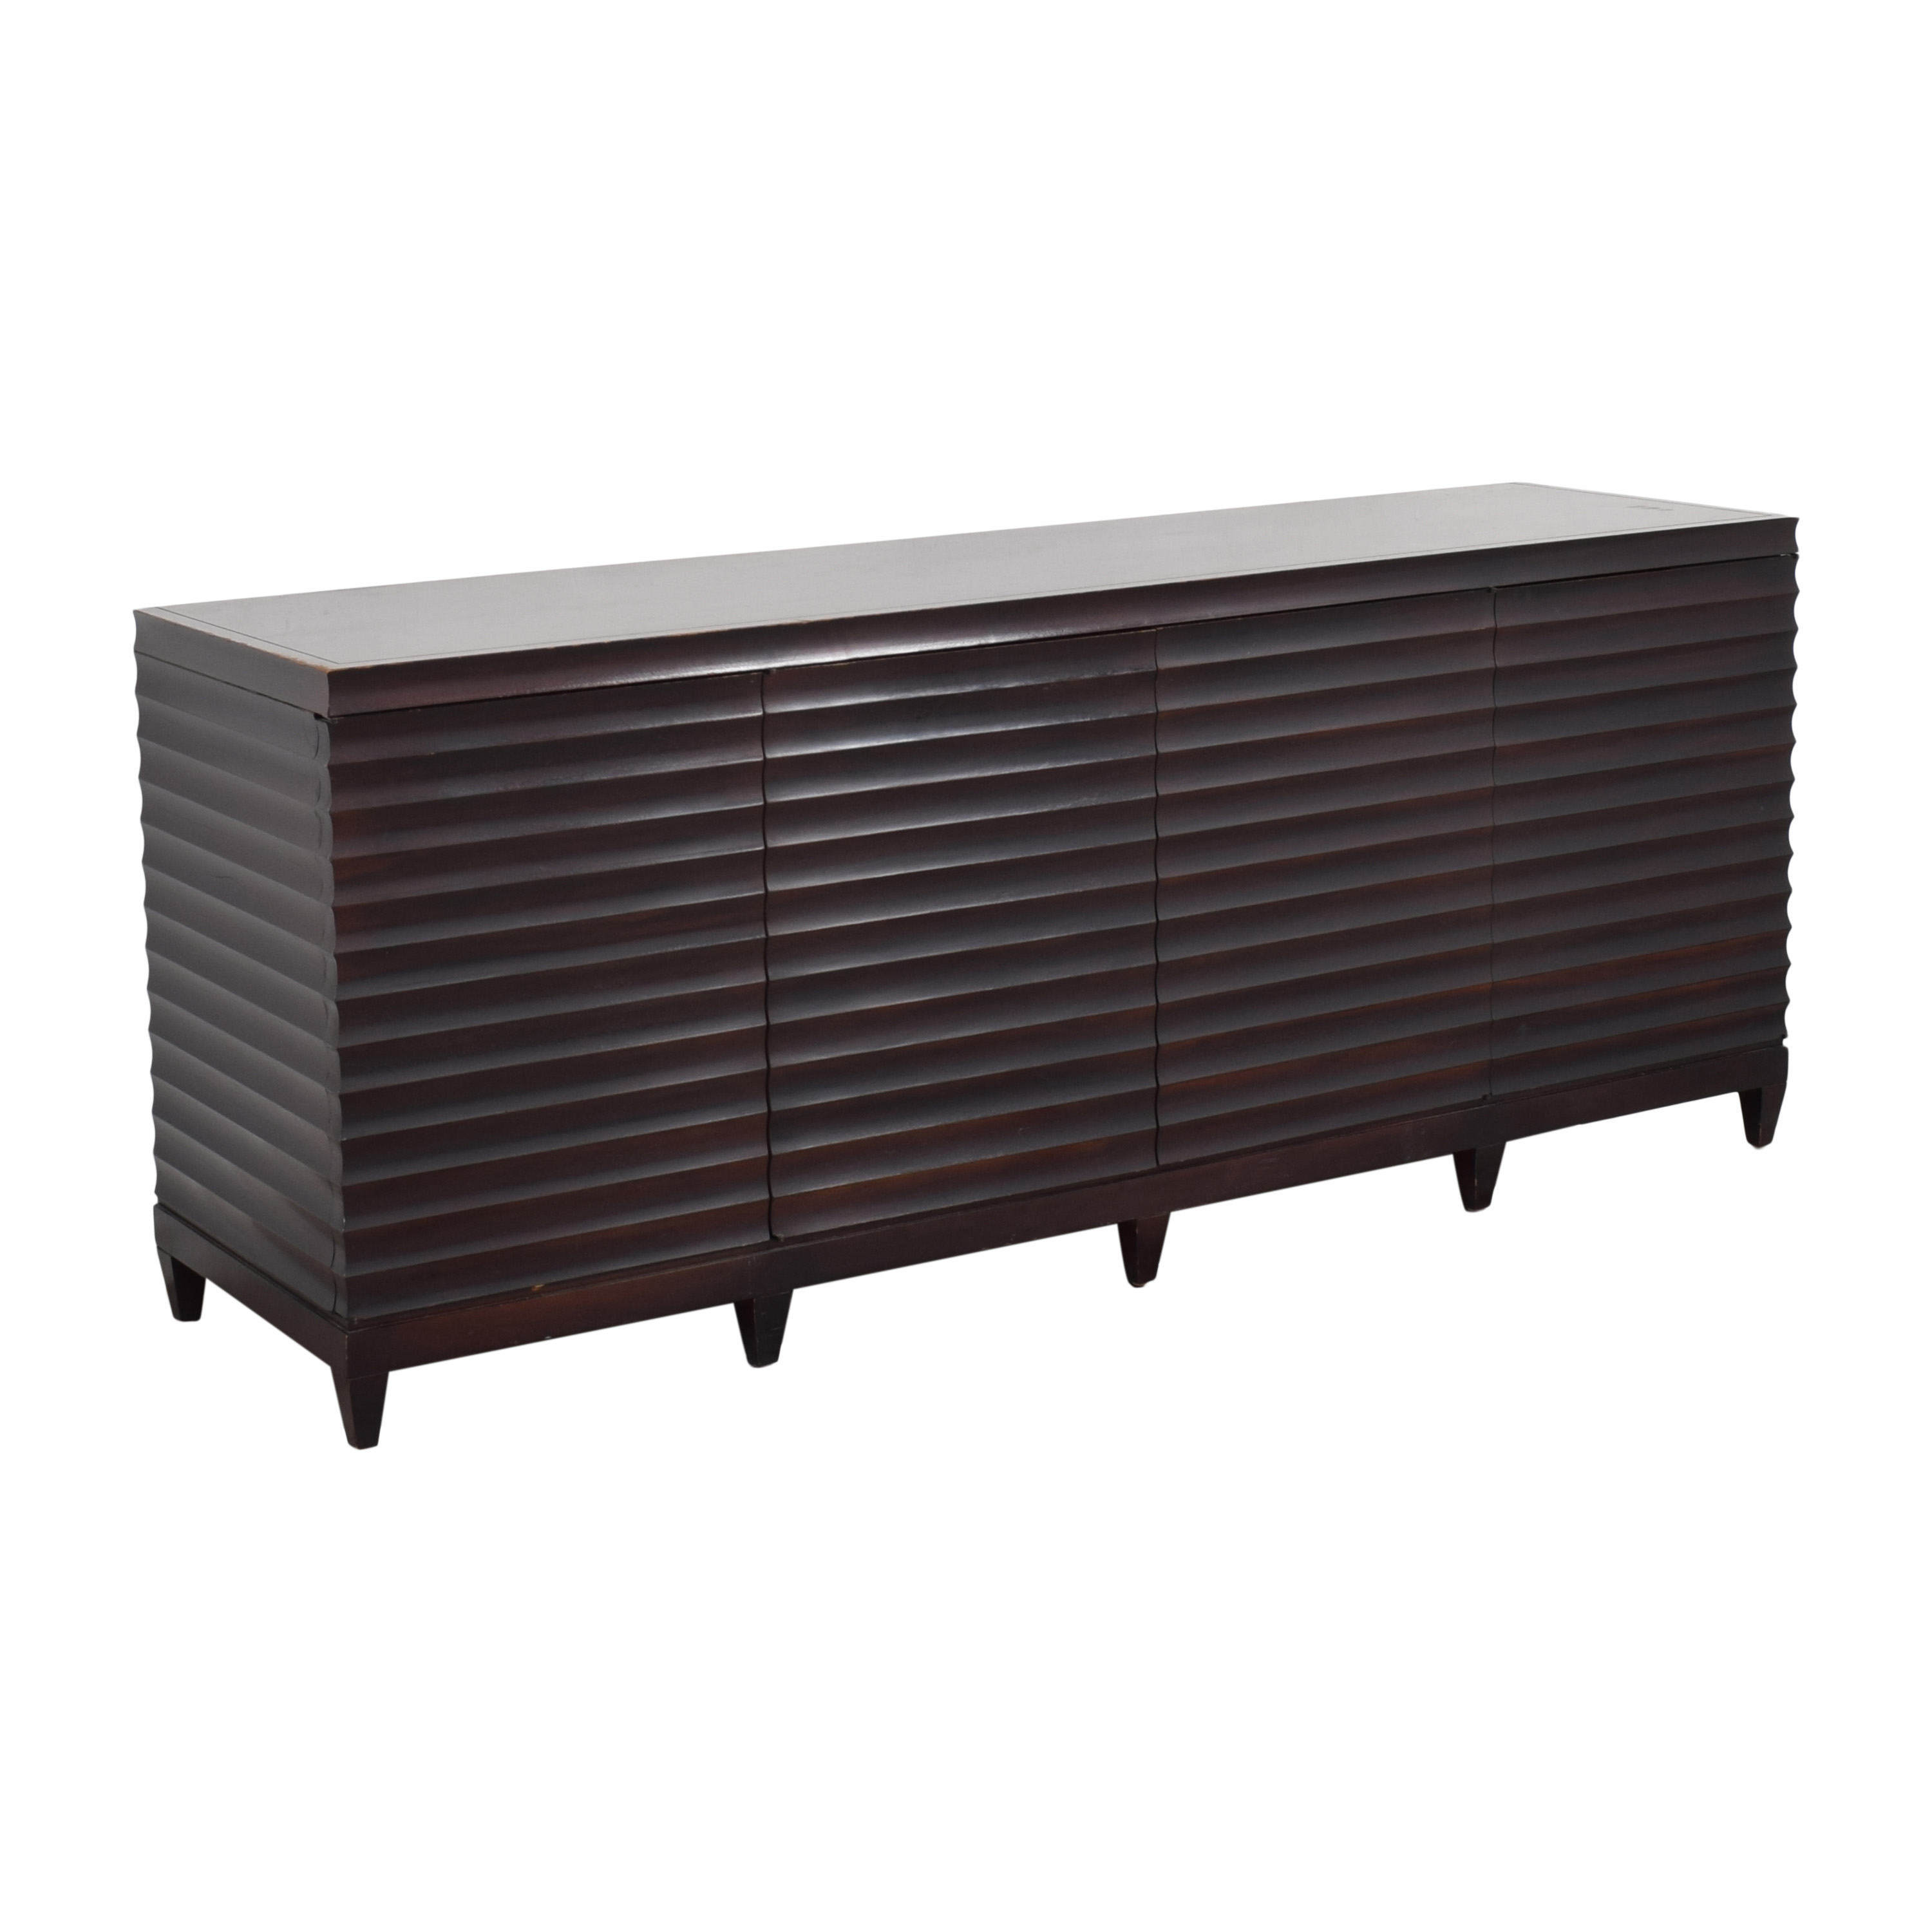 Baker Furniture Baker Furniture by Barbara Barry Fluted Low Cabinet used